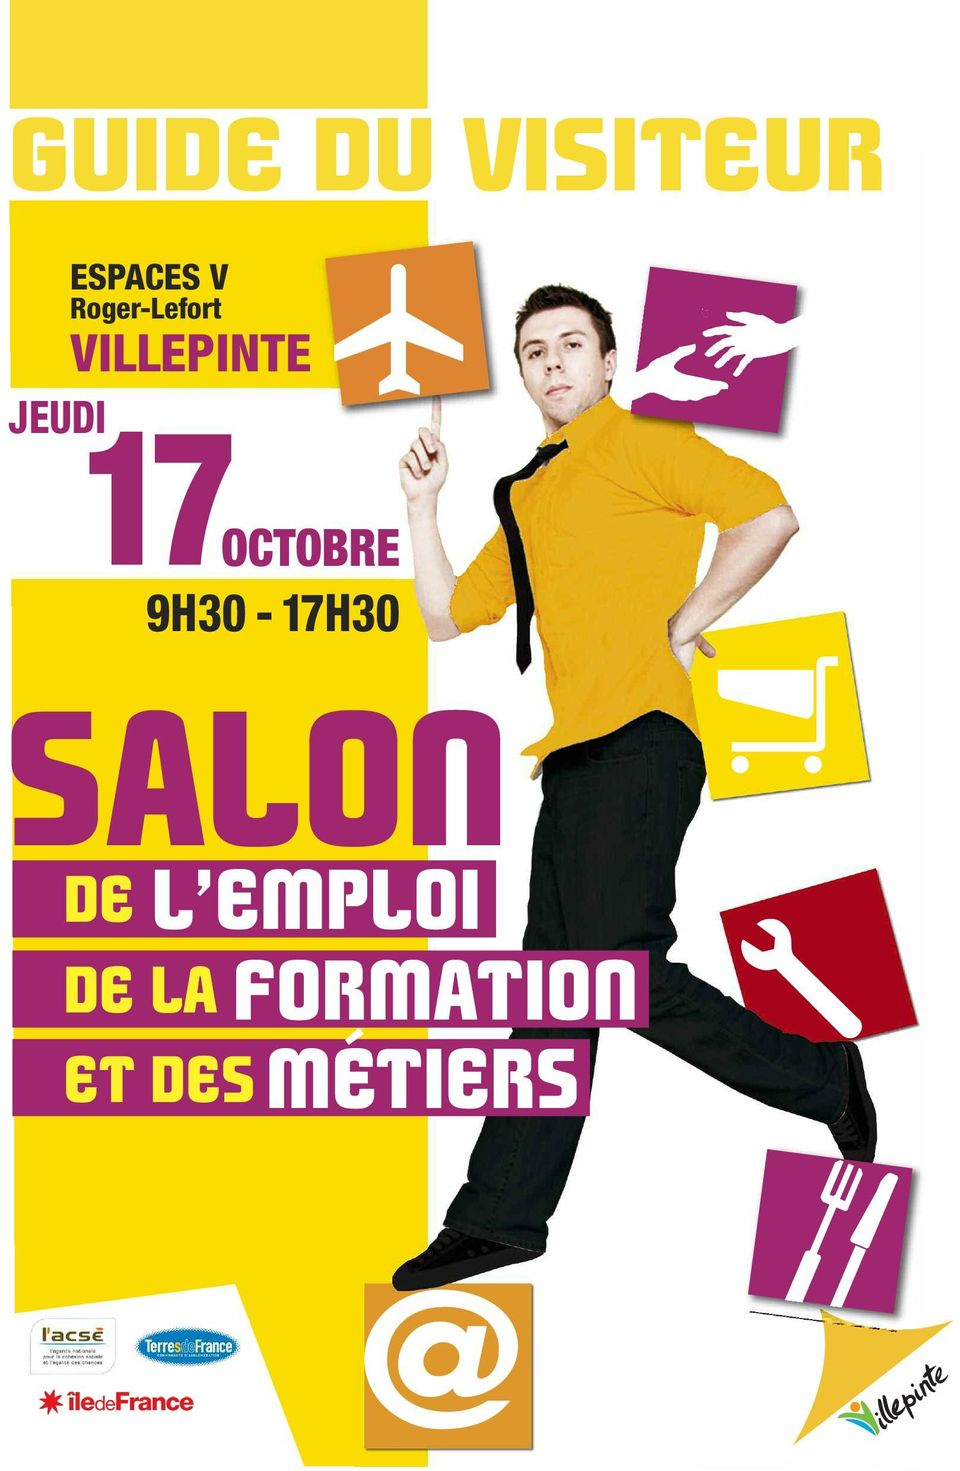 17OCTOBRE 9H30-17H30 SALON DE L